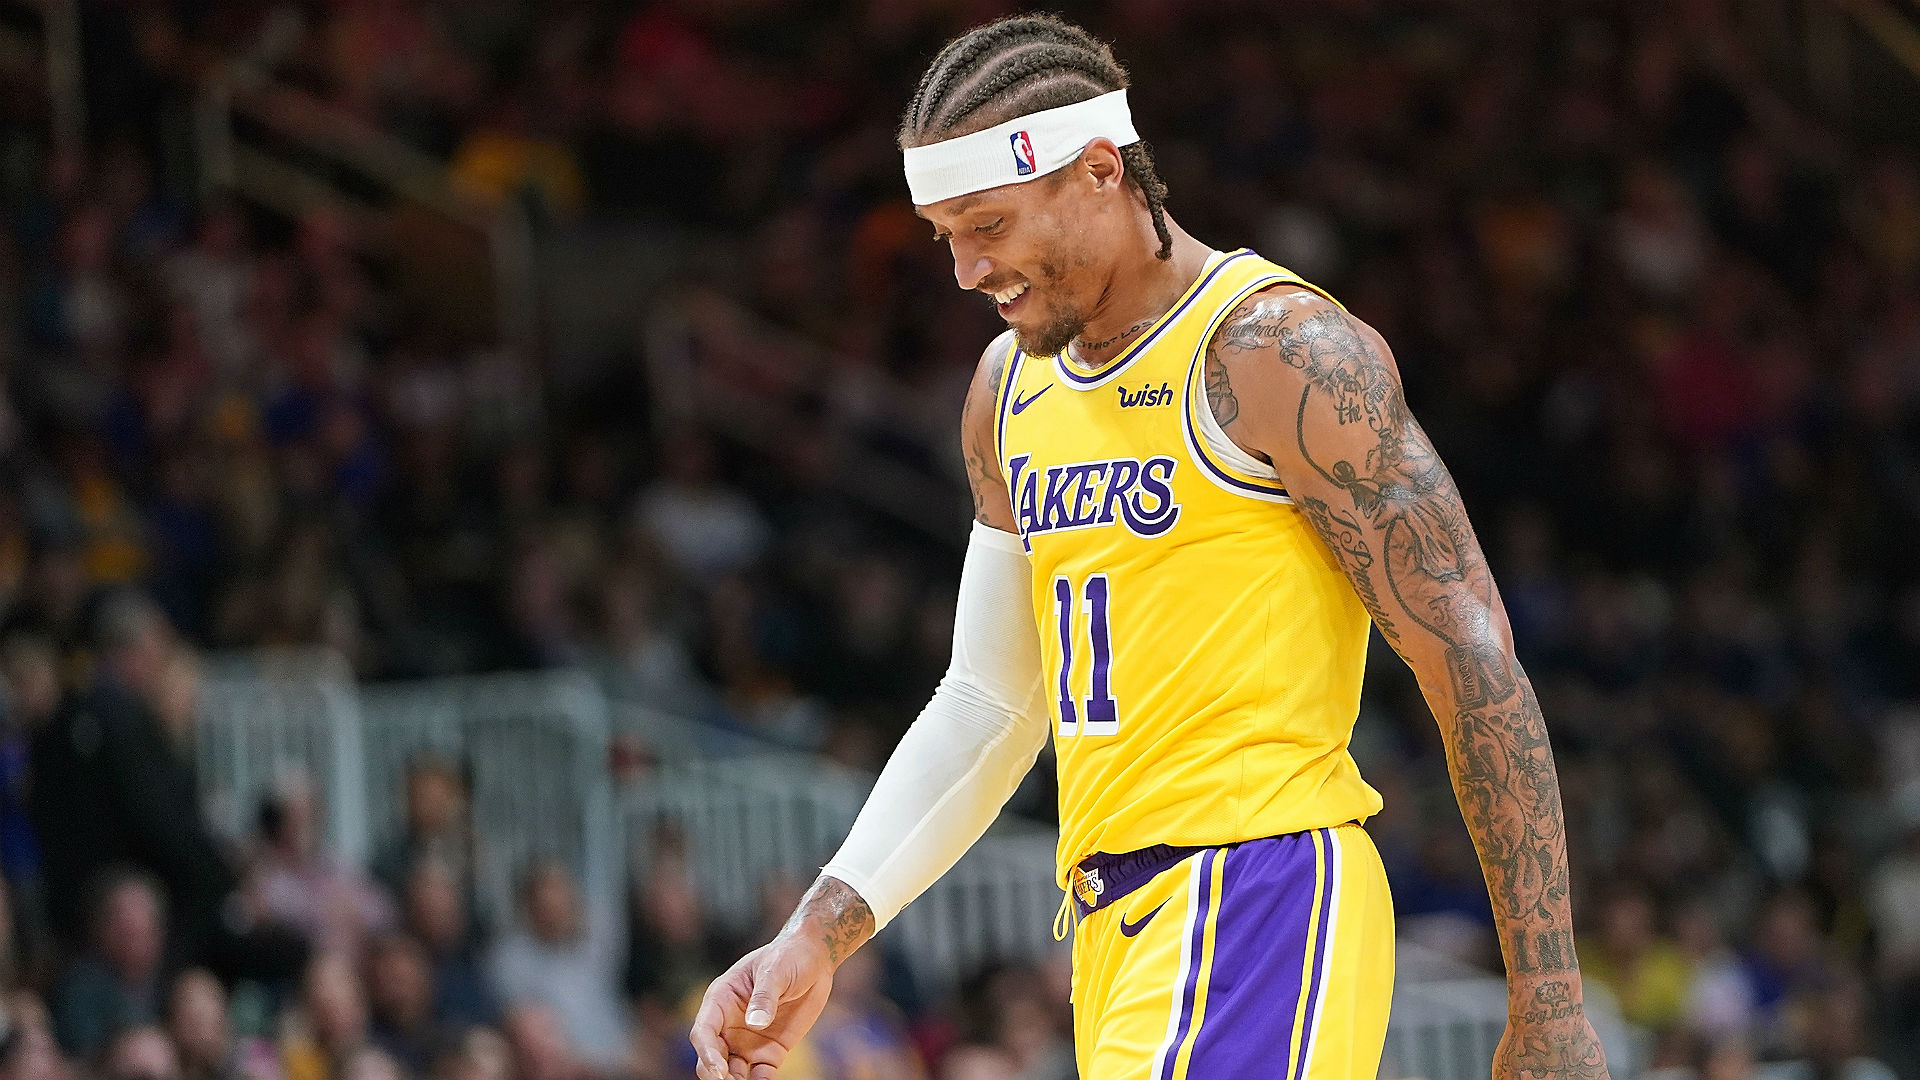 Michael Beasley Checks Into Game With Wrong Color Shorts